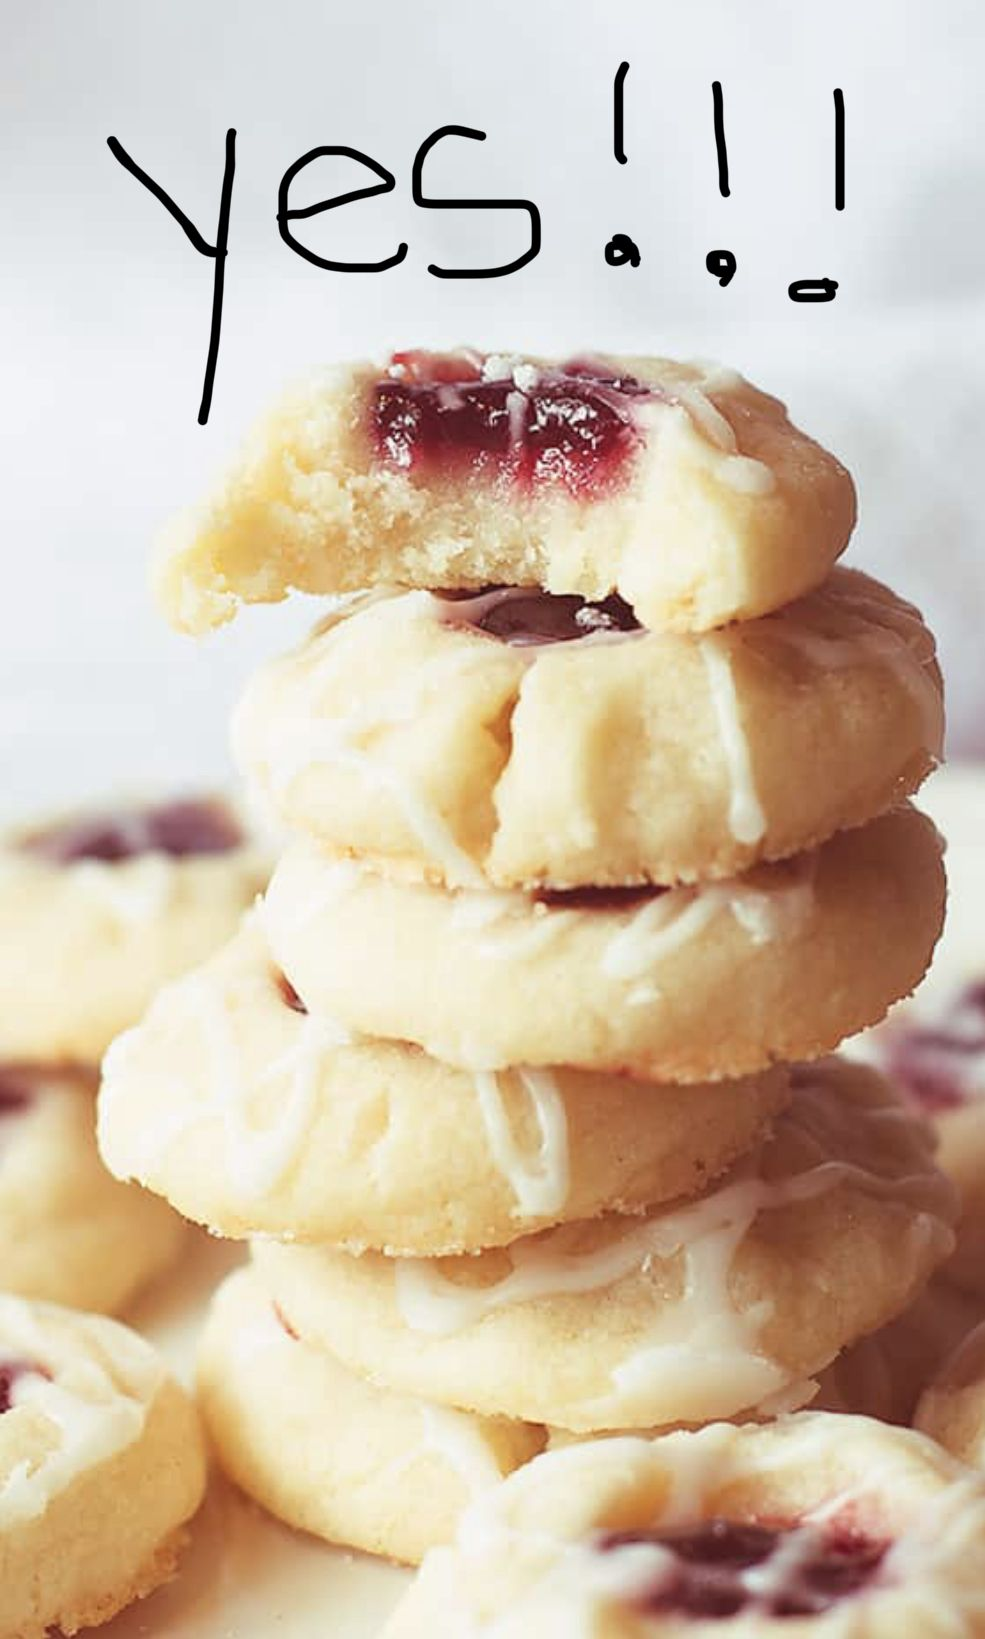 Raspberry almond shortbread cookies are the best! | thumbprint cookies / thumbprints / Christmas cookies / holiday cookies / best cookies / cookie recipe #cookies #bestcookies #recipes #desserts